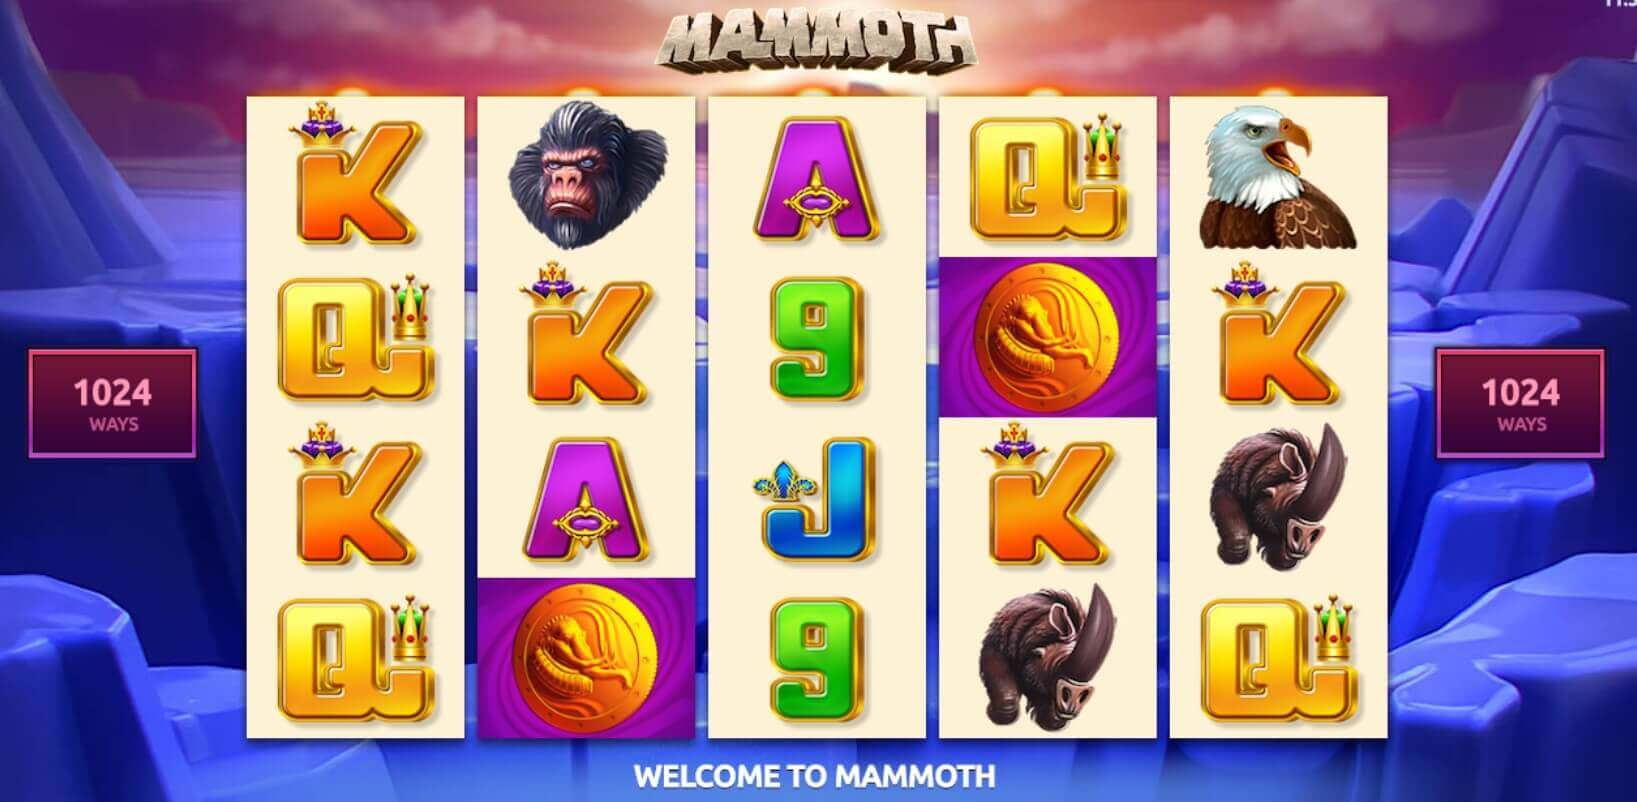 Mammoth casino game